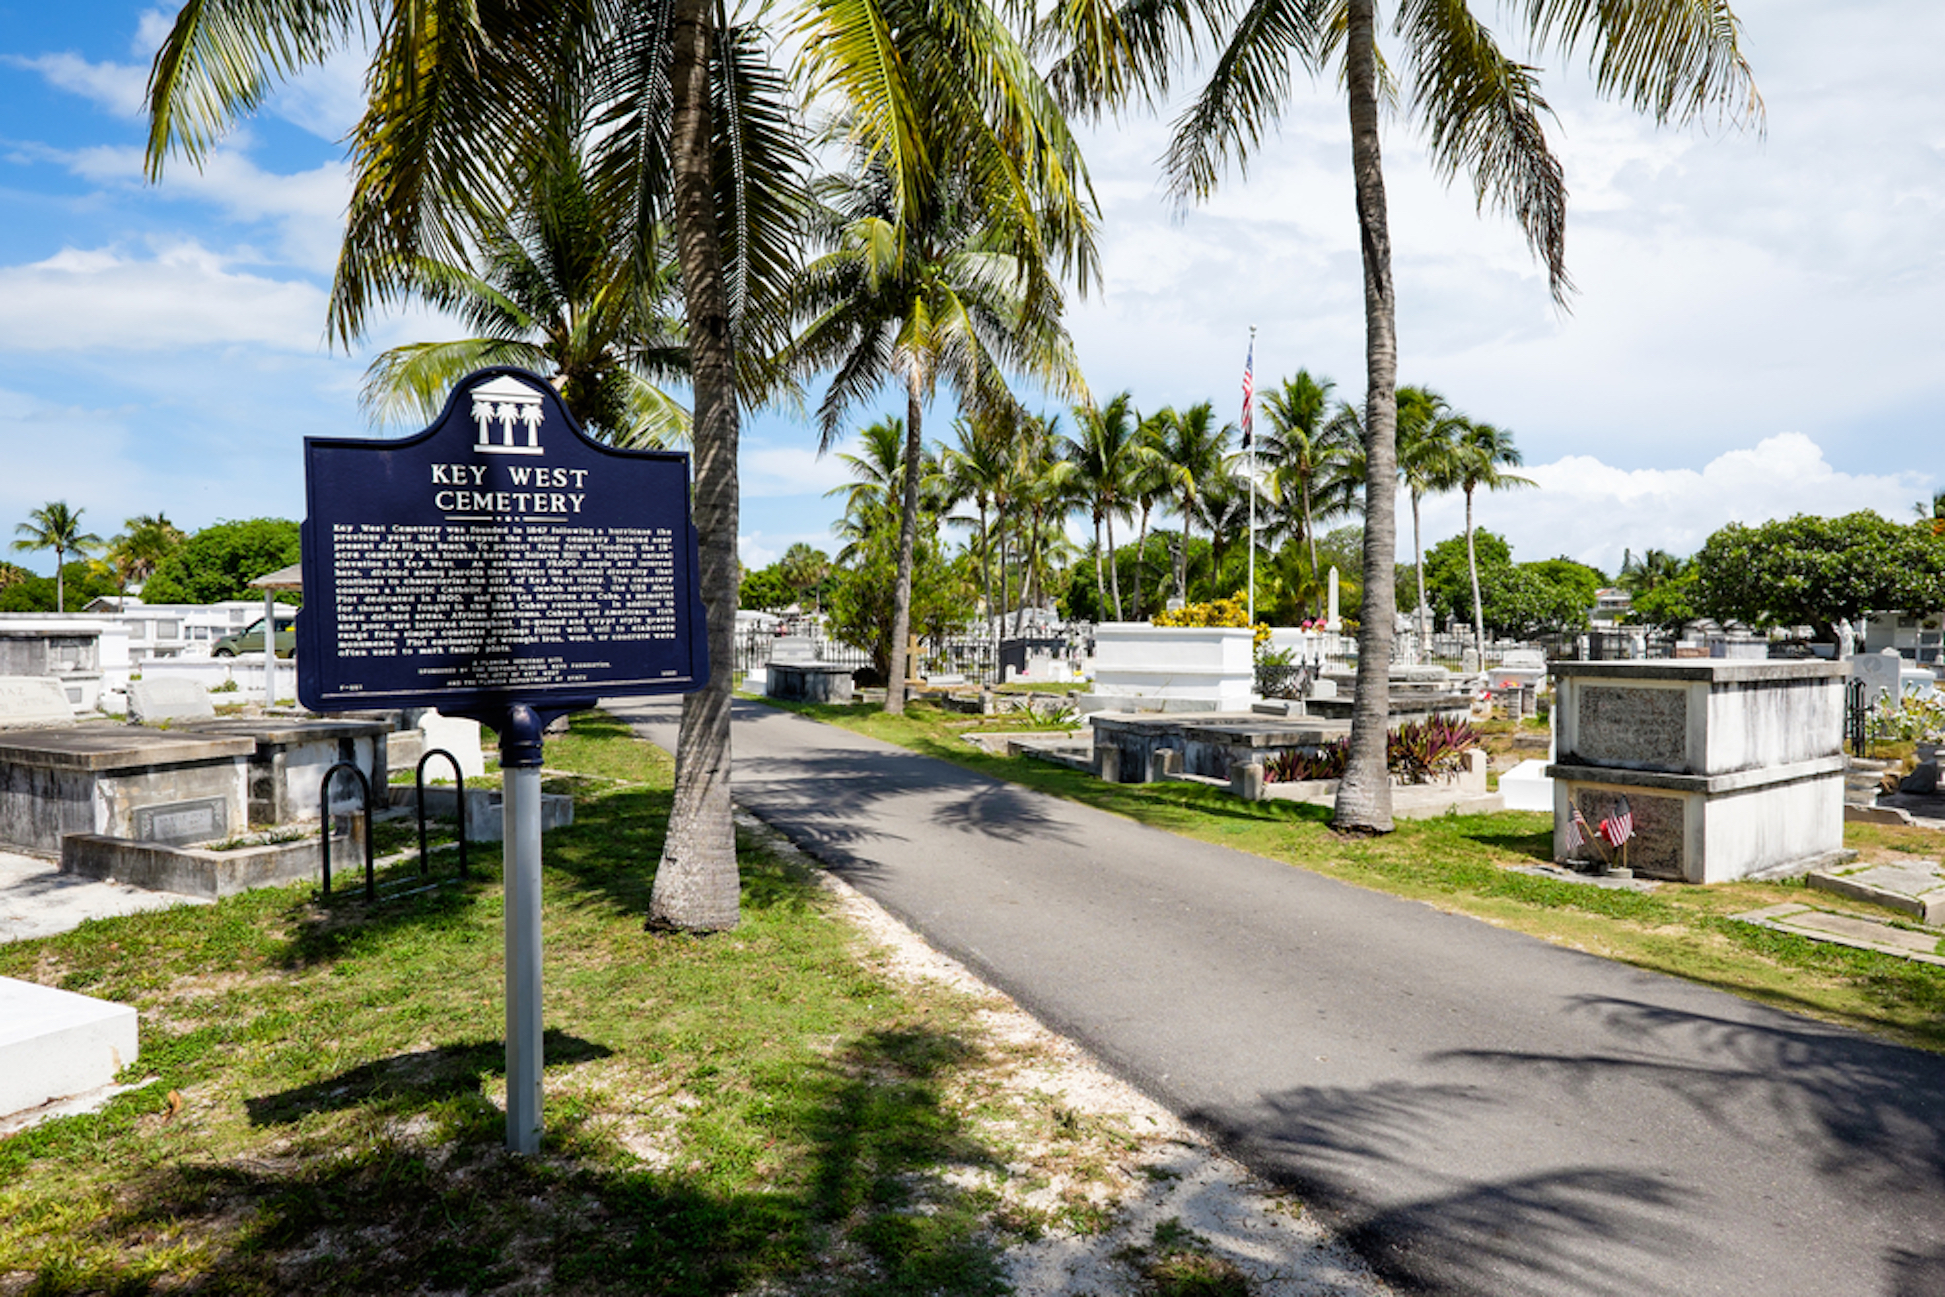 Plan a Visit to the Key West Cemetery